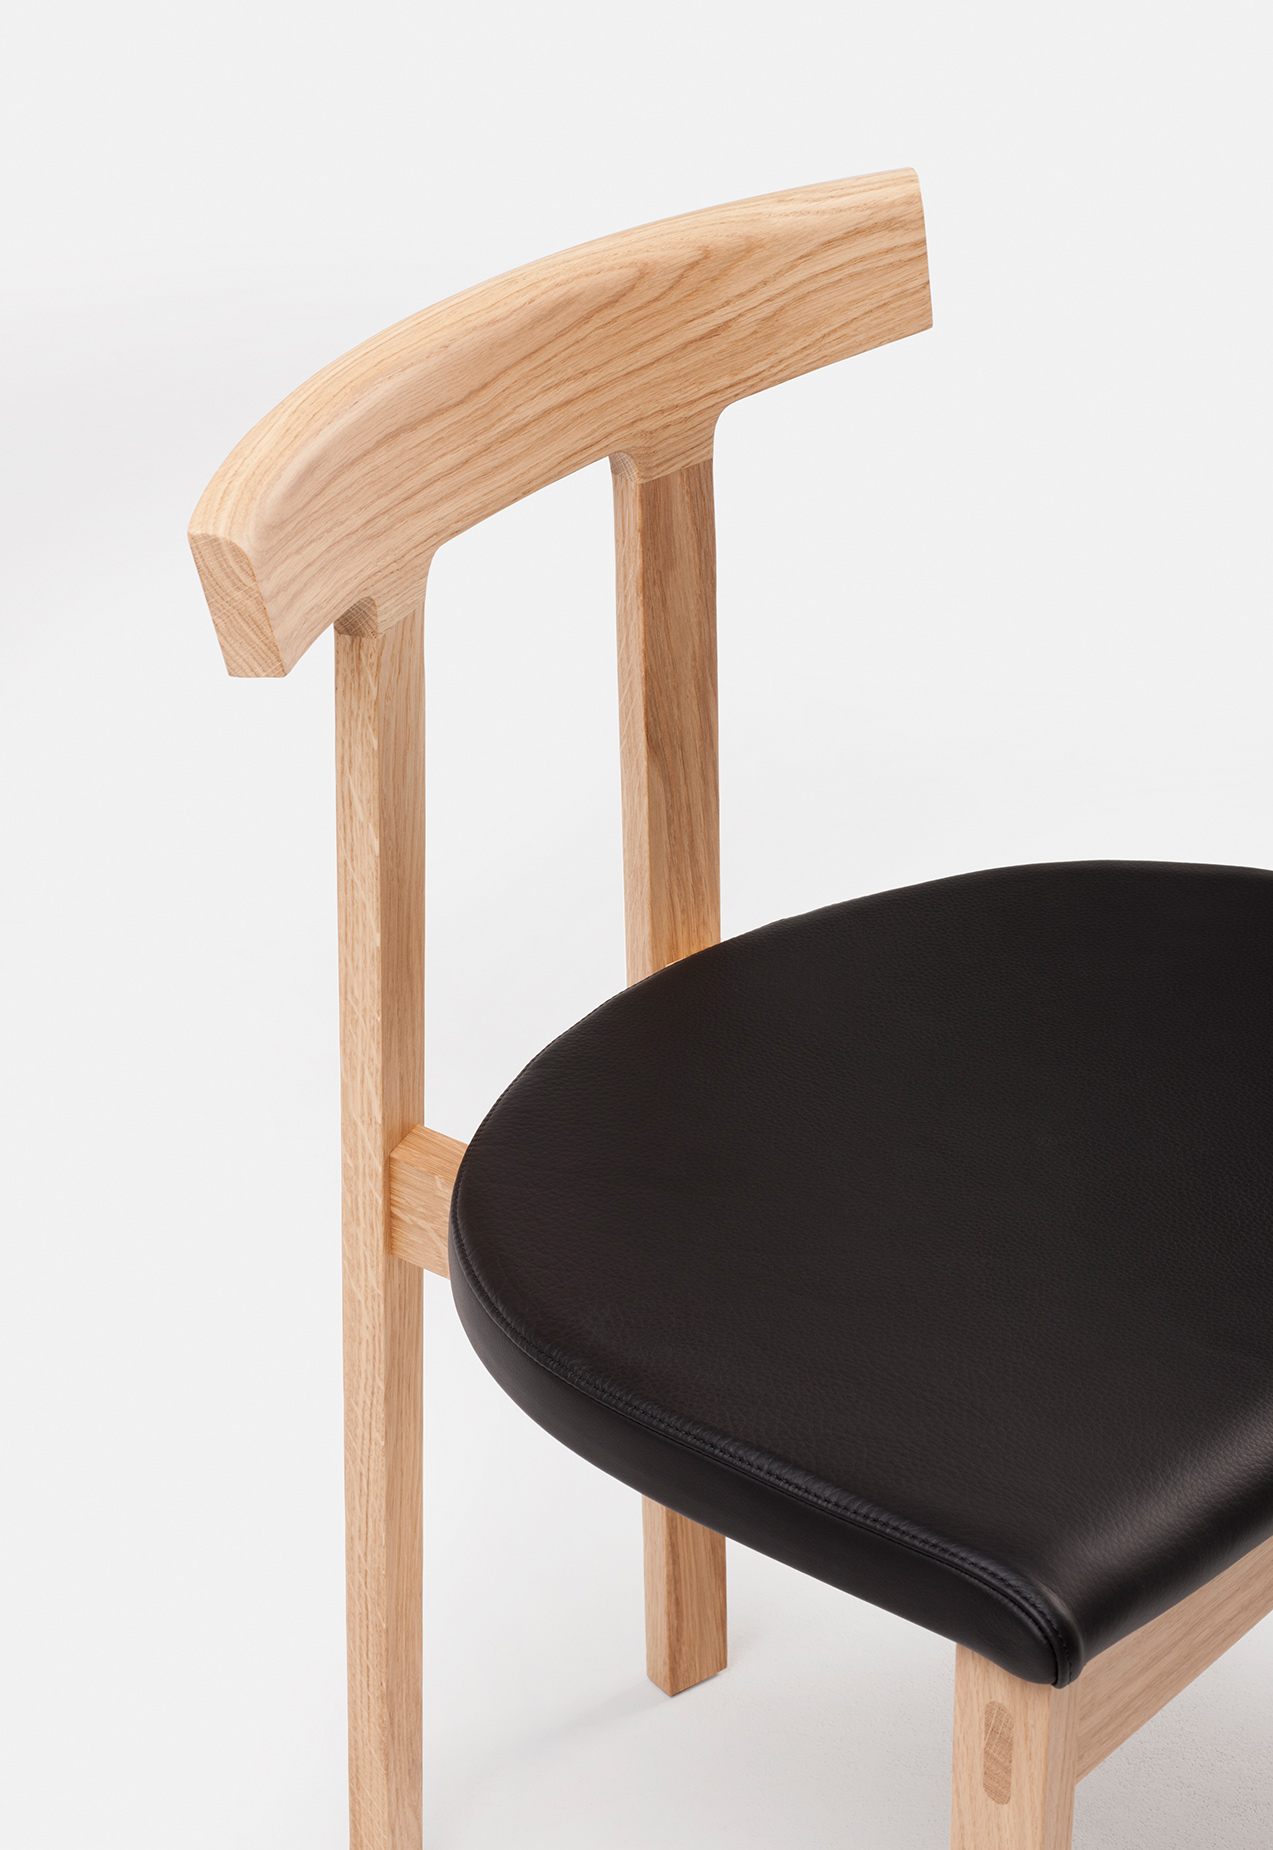 Torii Chair in white oak, black leather upholstered seat